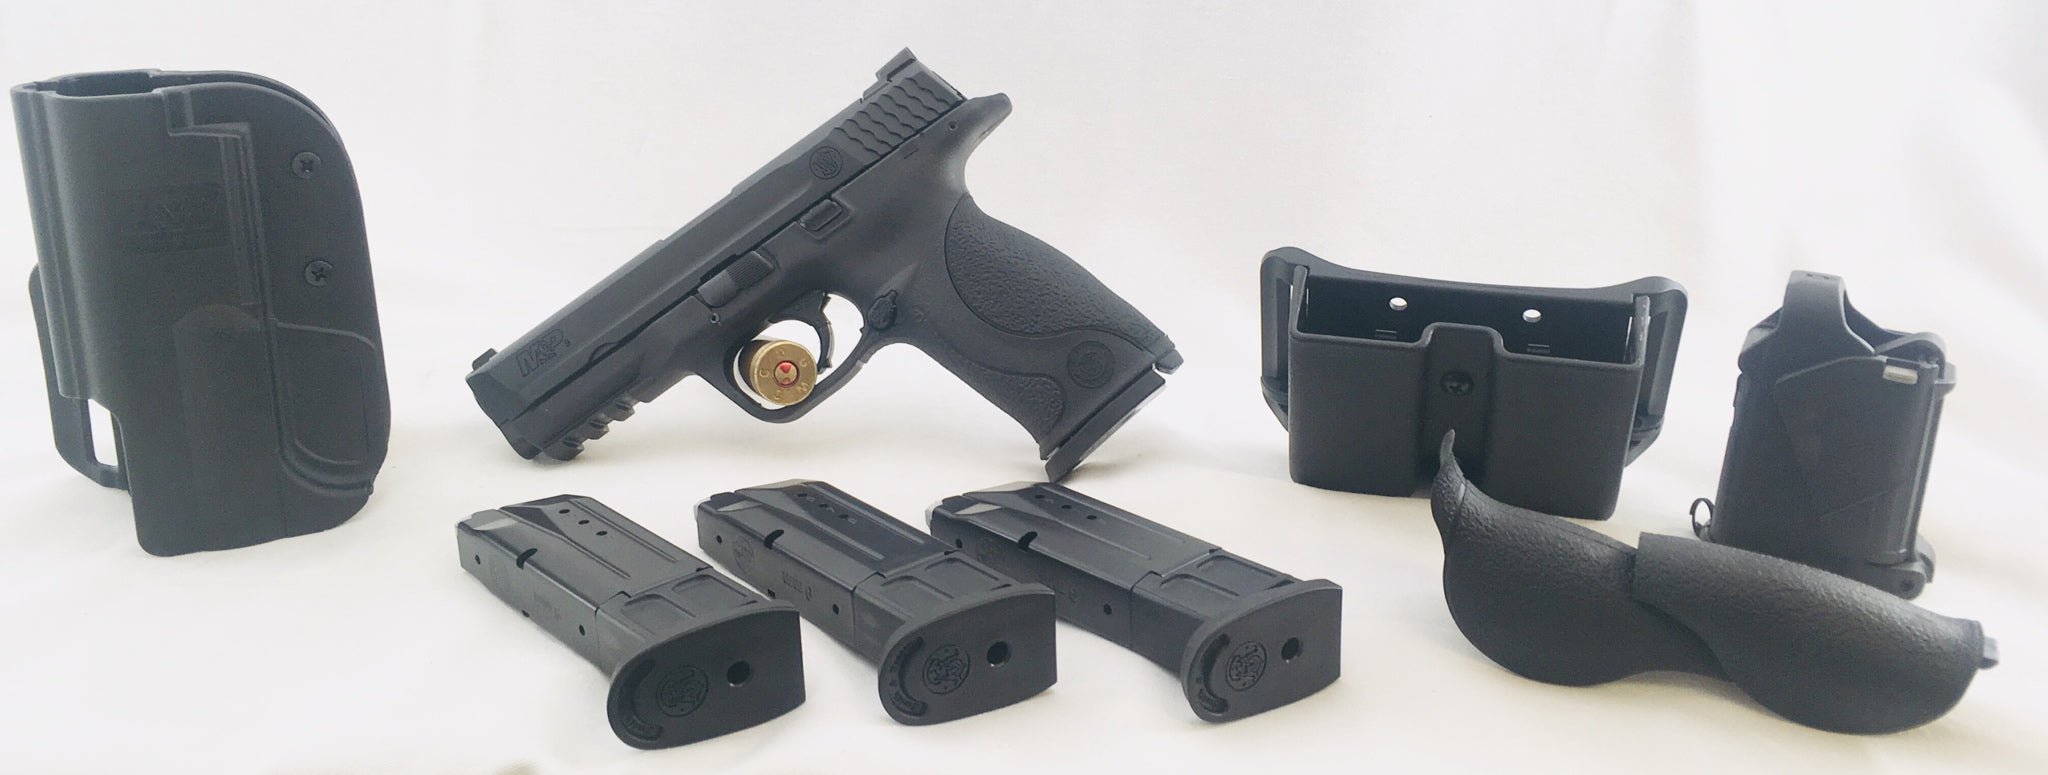 Smith & Wesson M&P9 9MM Range Kit